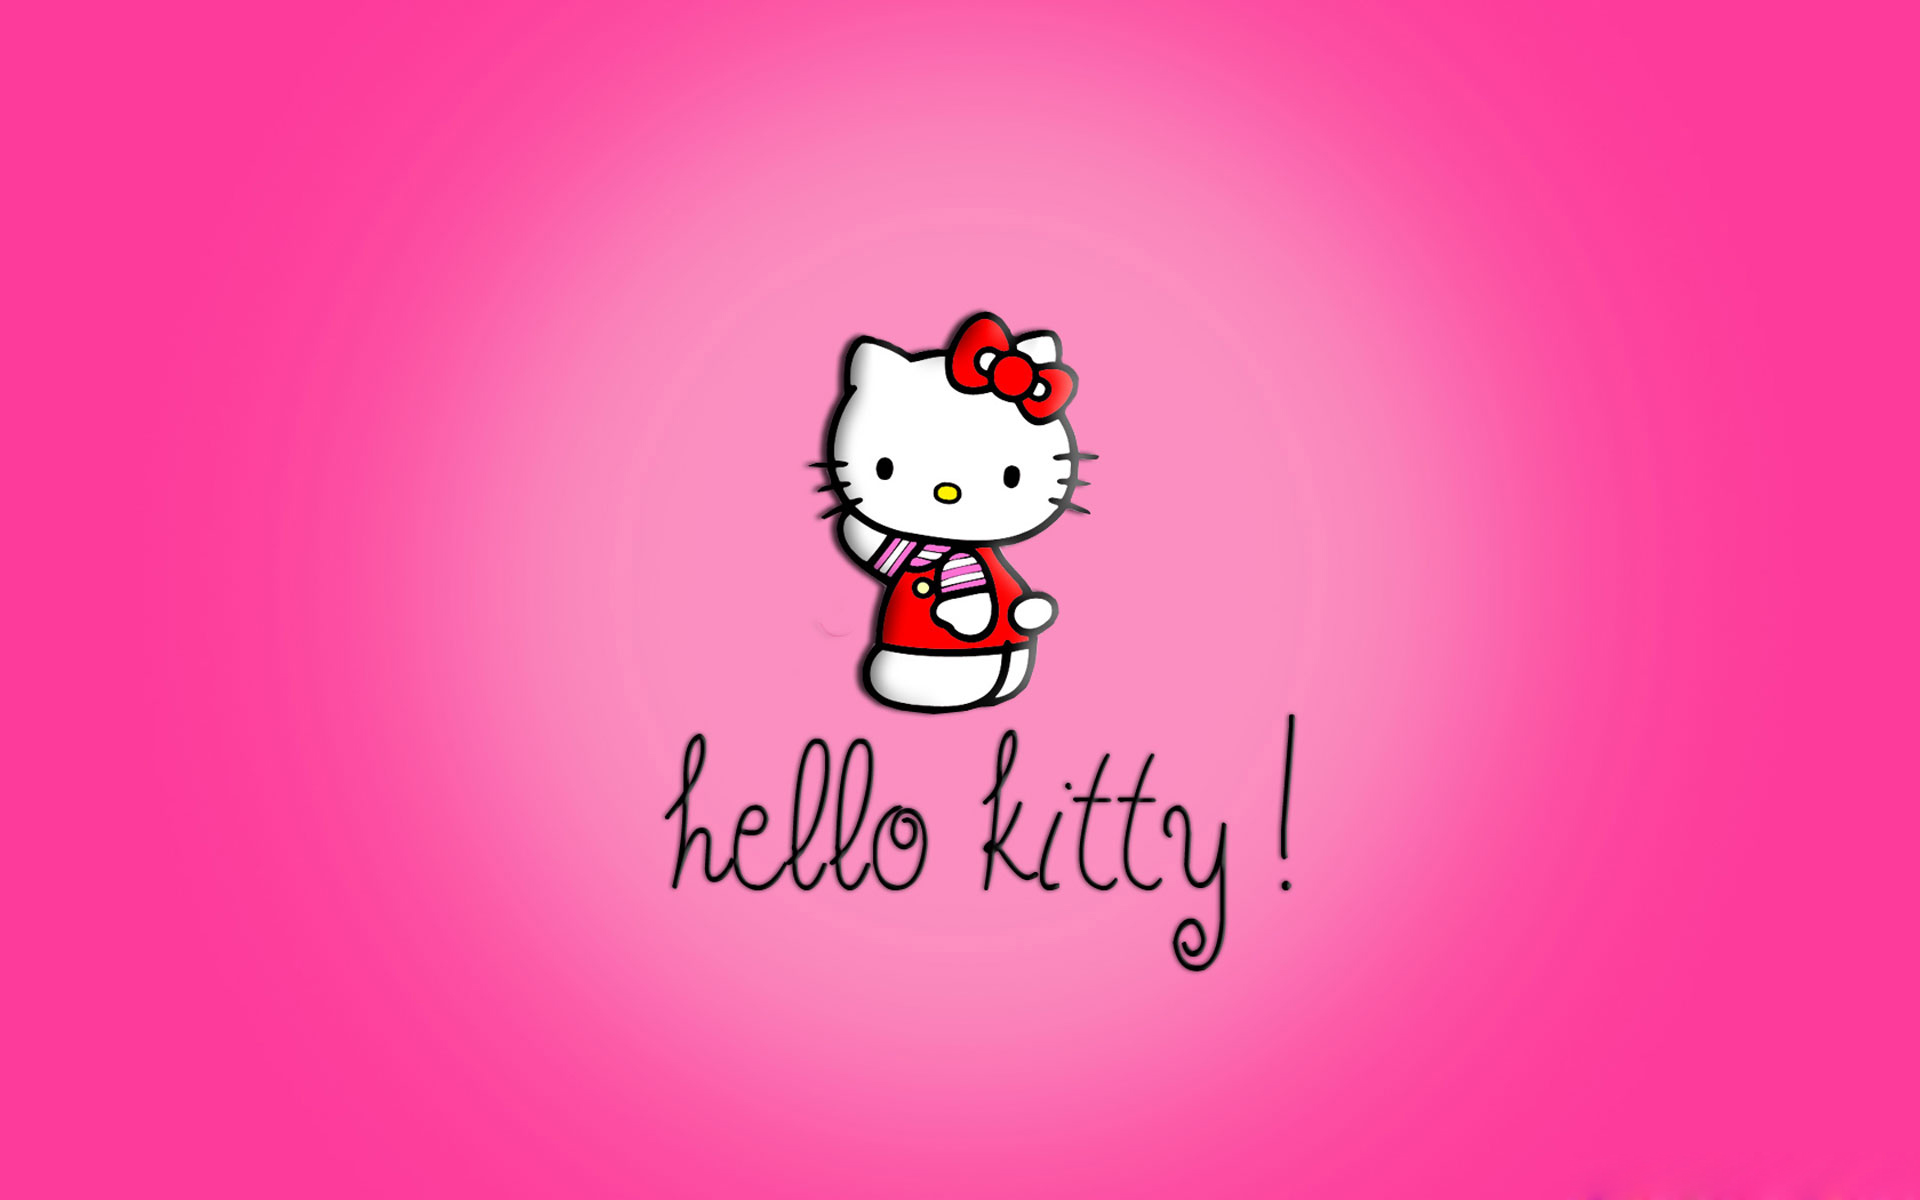 Wallpapers Hd Hello Kitty Hello Kitty Wallpaper Hd Airwallpaper Com